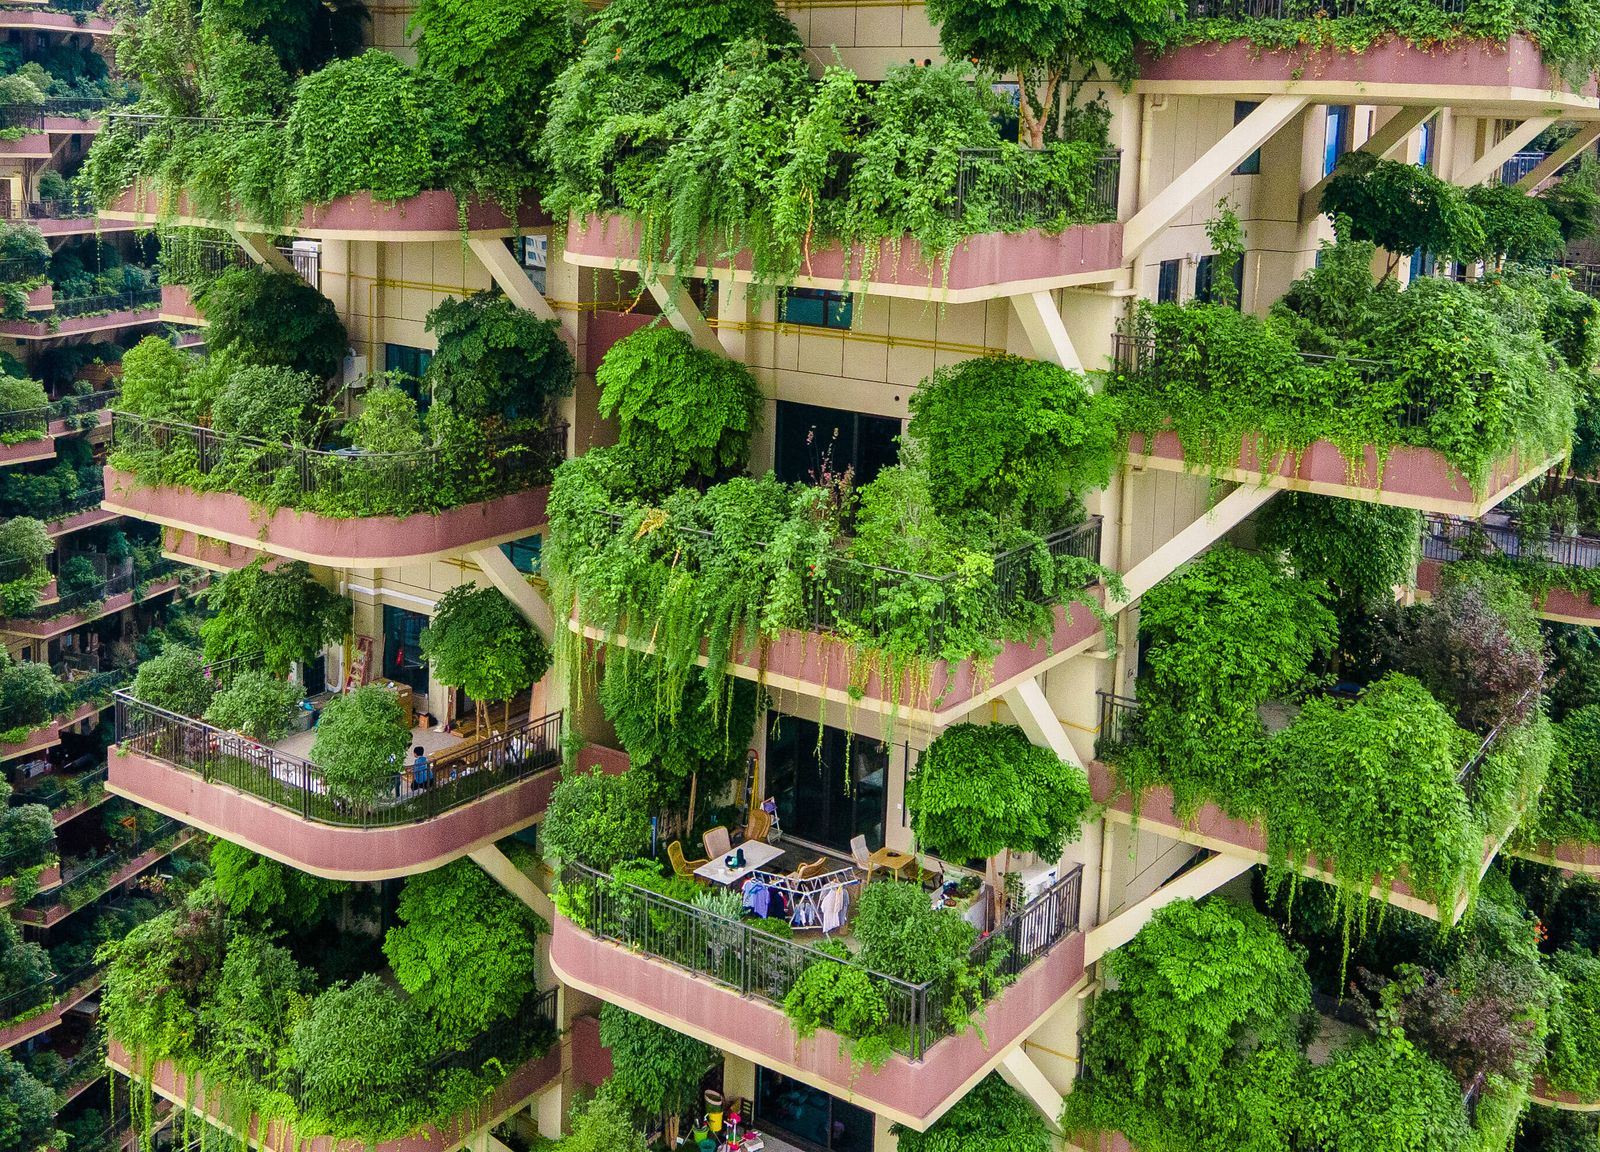 CHENGDU, CHINA - SEPTEMBER 15: Aerial view of buildings covered with plants at a residential community on September 15,